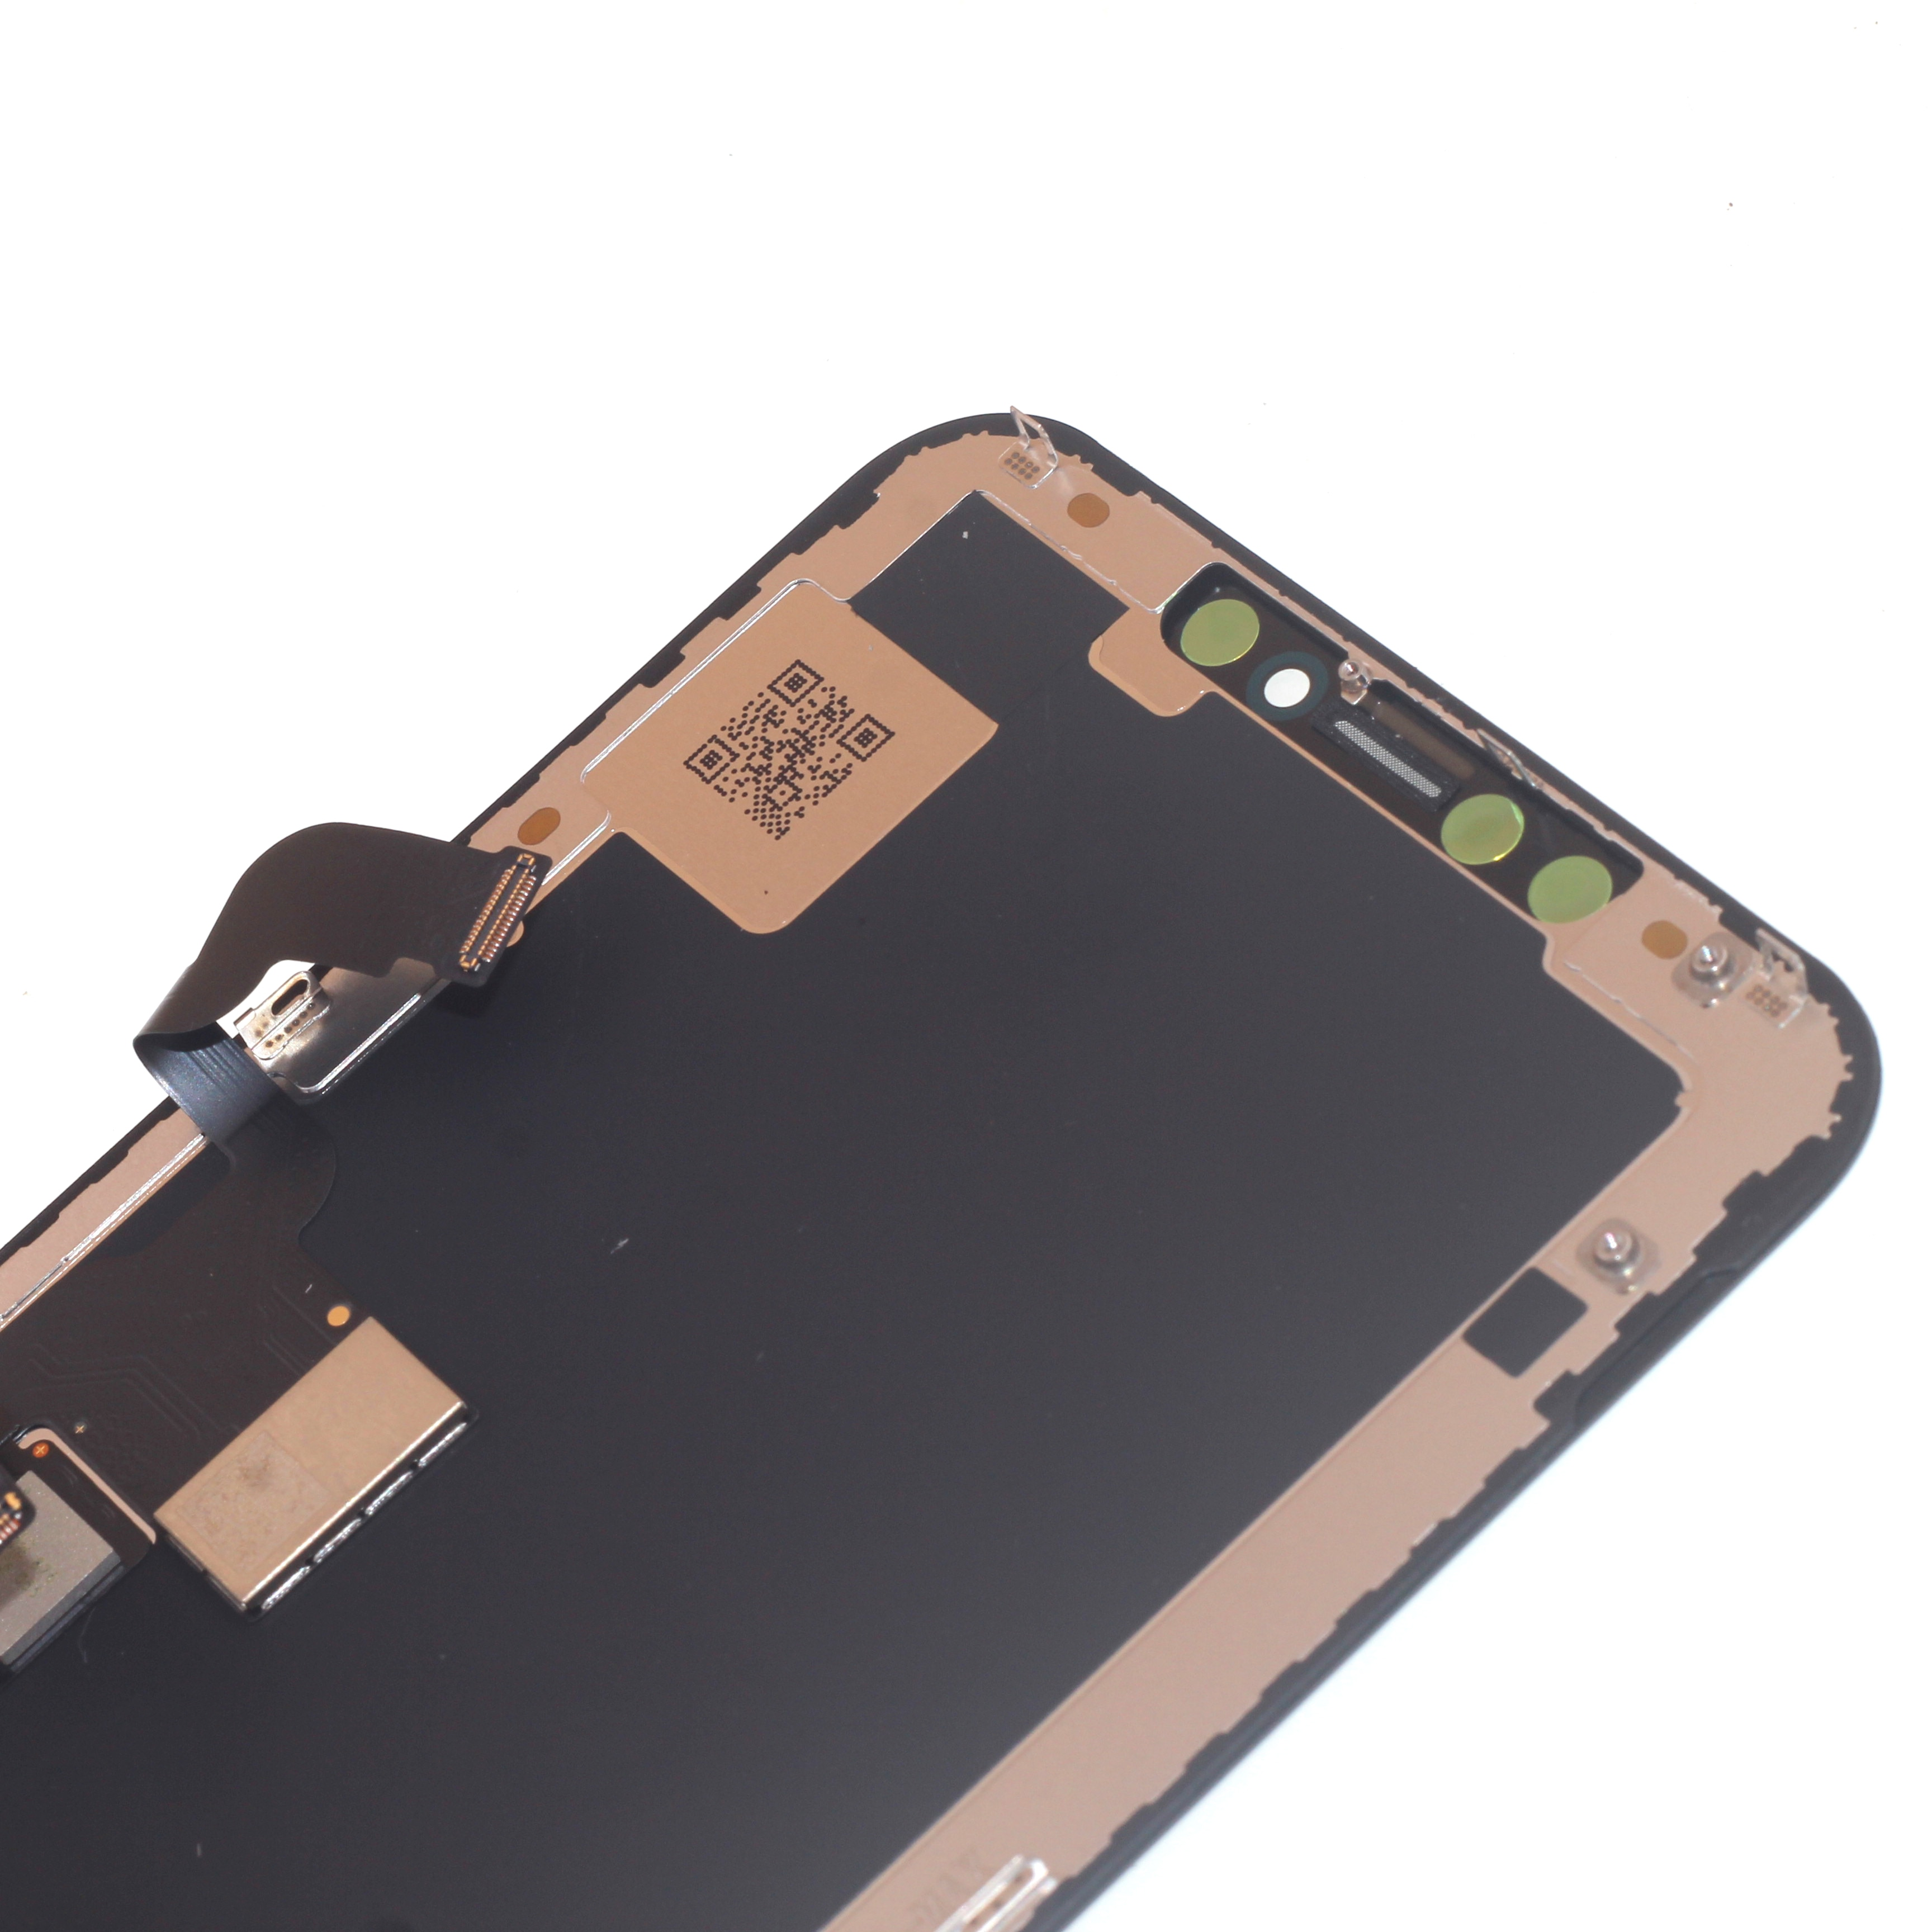 New AMOLED Display For iphone XS MAX LCD DISPLAY Touch Screen Digitizer Assembly for IPHONE XS MAX OEM OLED LCD Repair parts enlarge